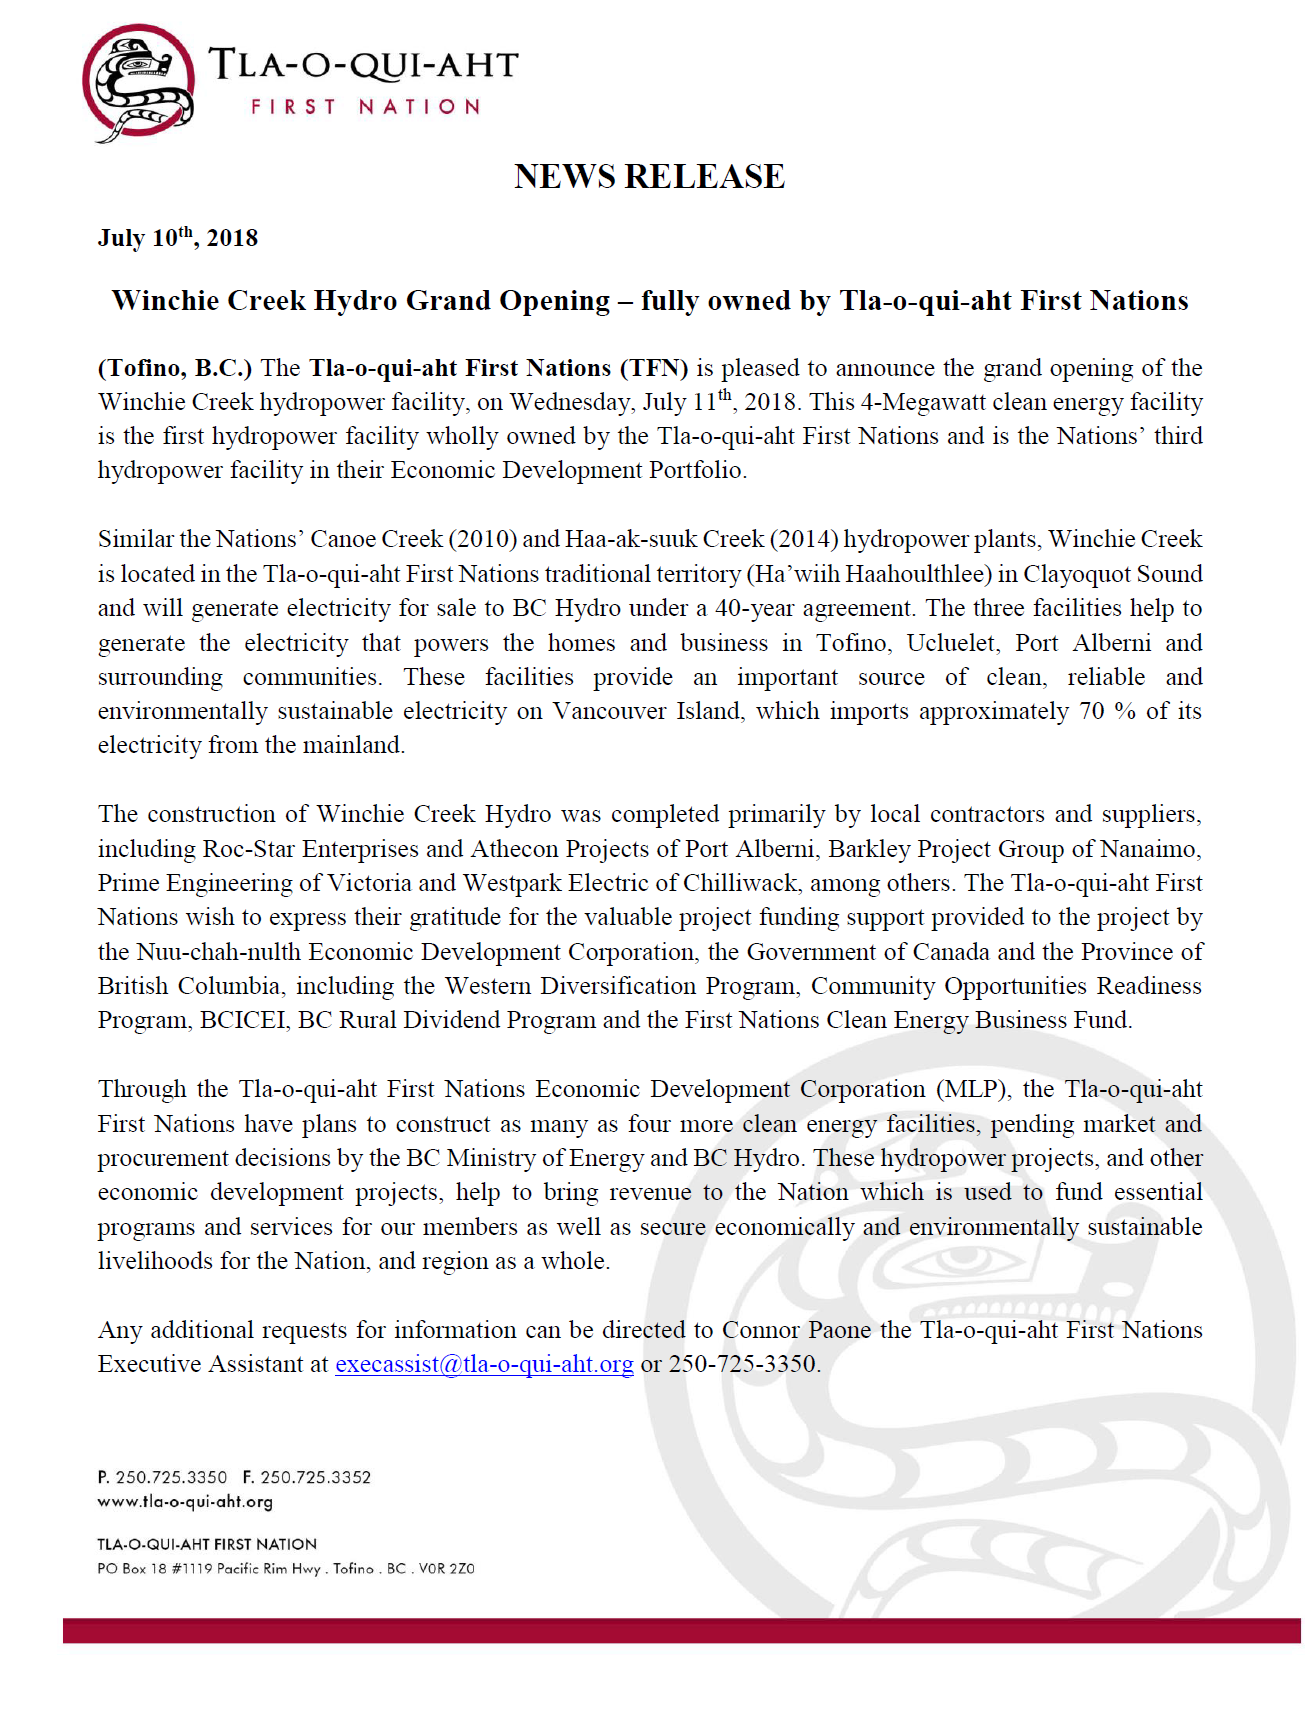 TFN EDC News Release.png